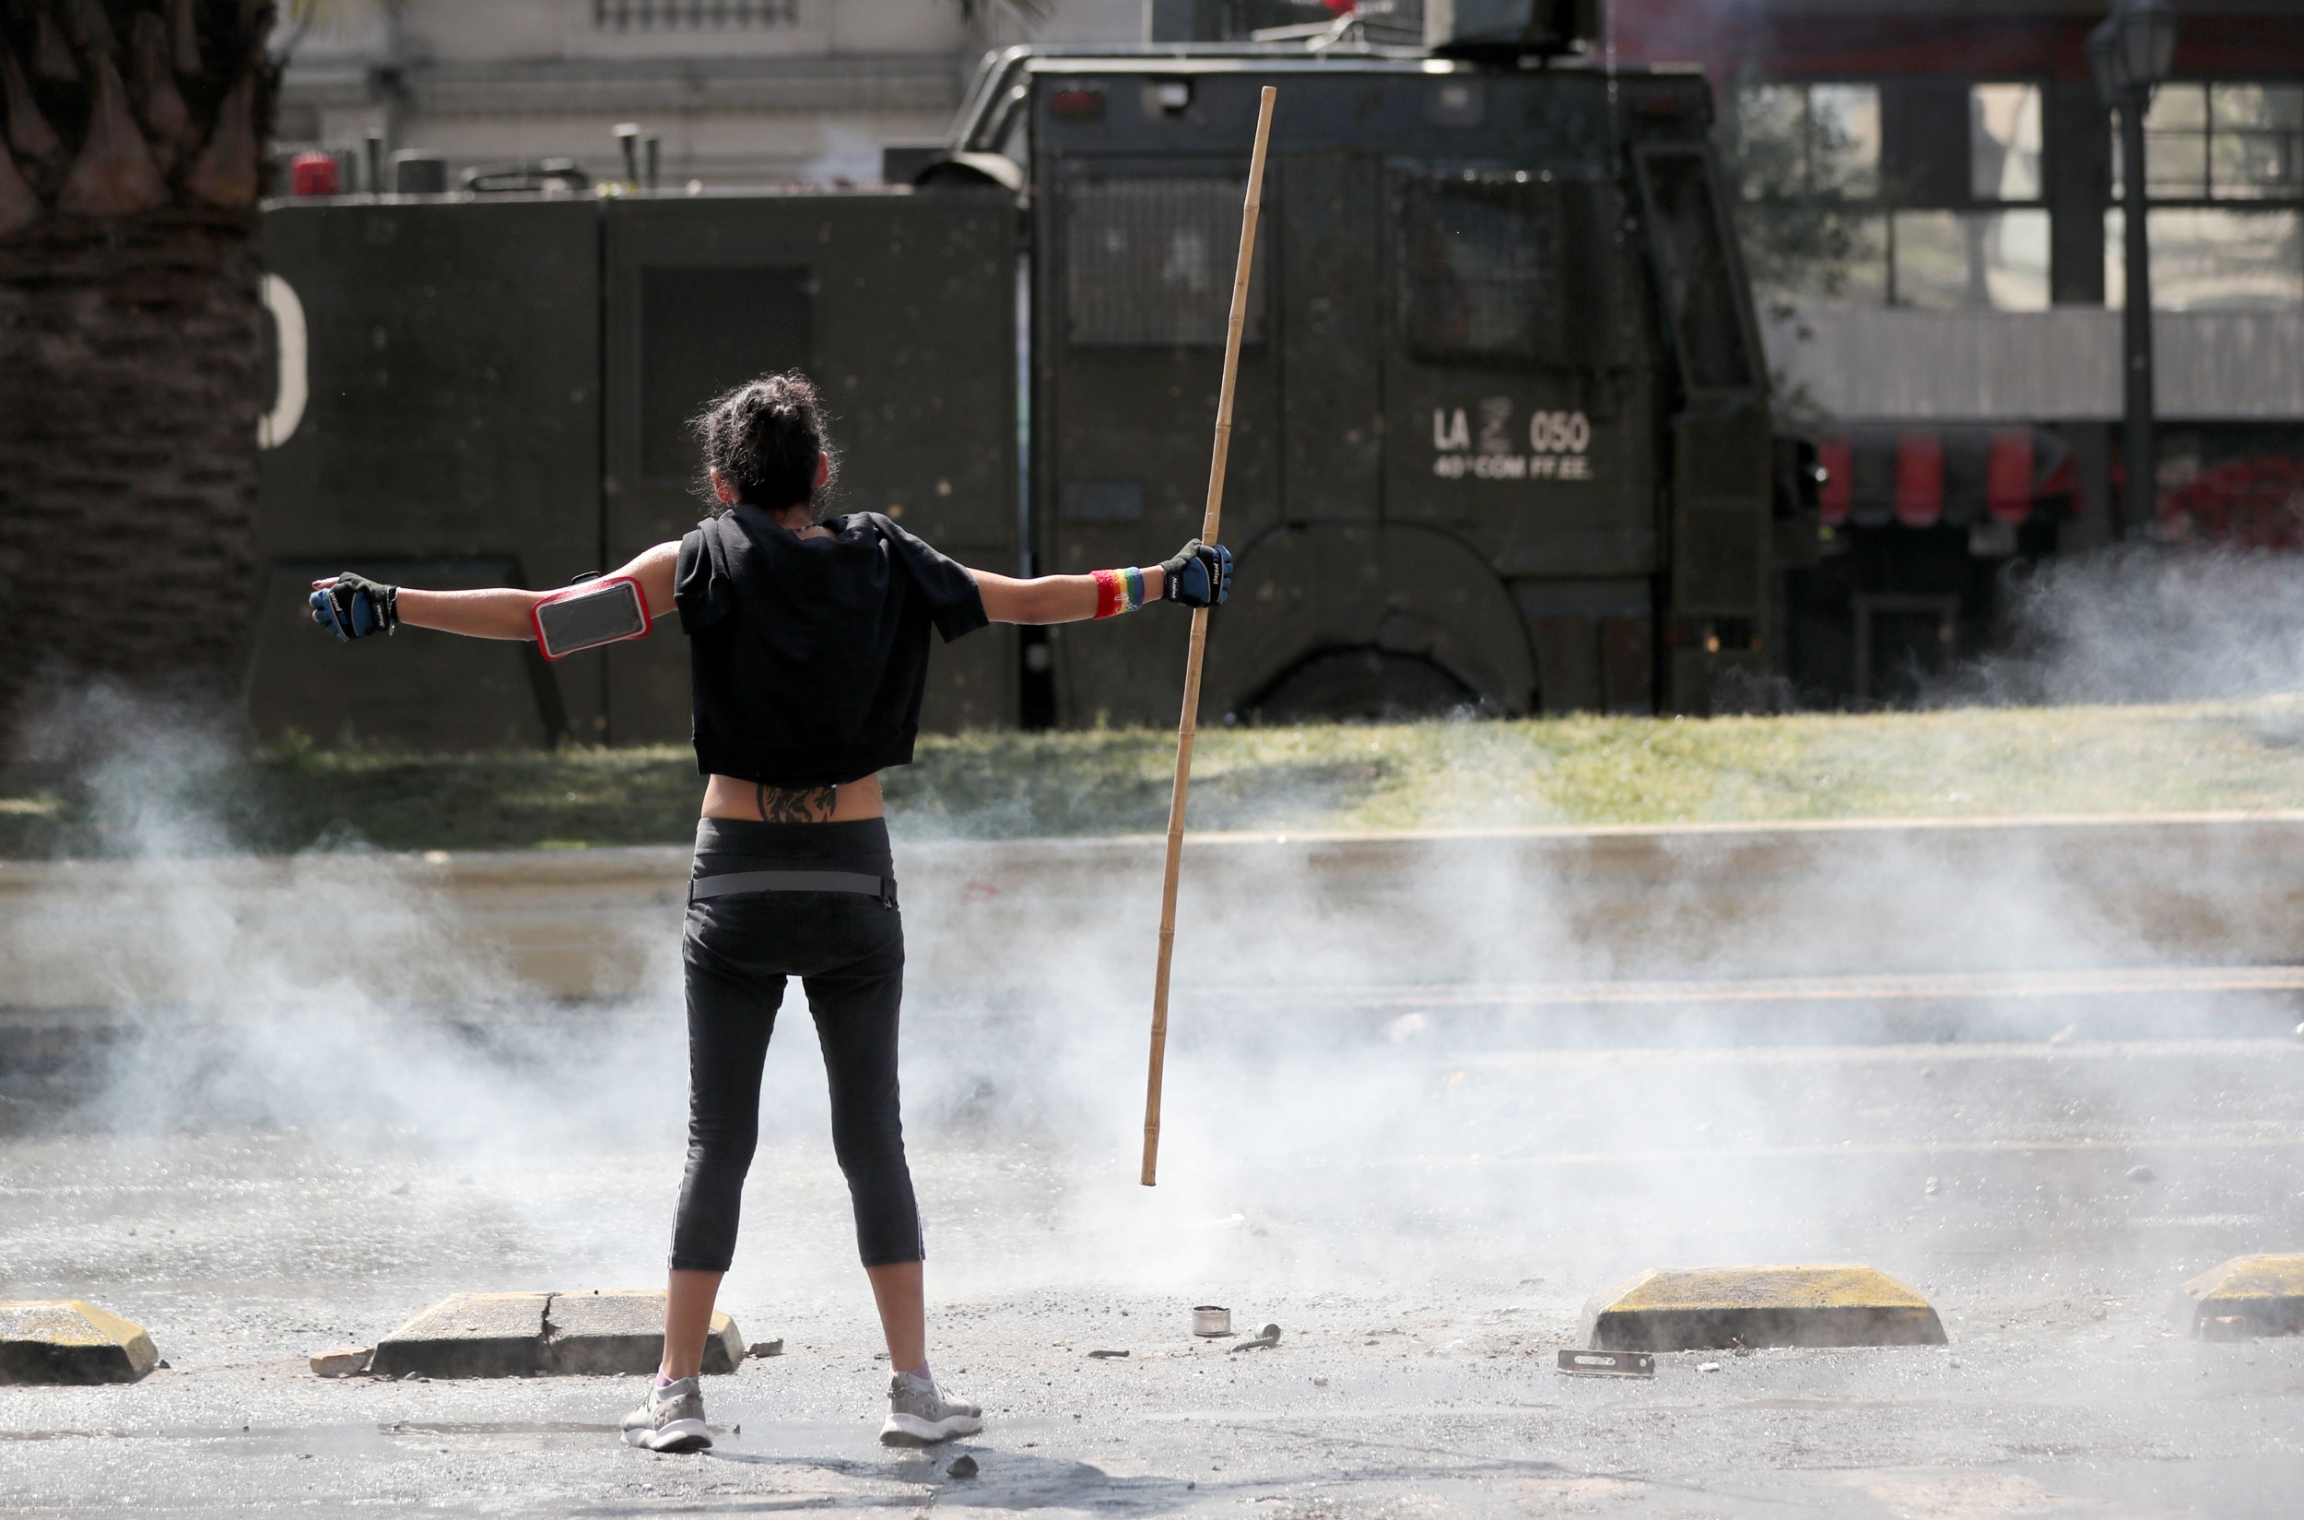 A woman is shown stands with her arms out, holding a stick, with smoke around her and a military truck in the distance.